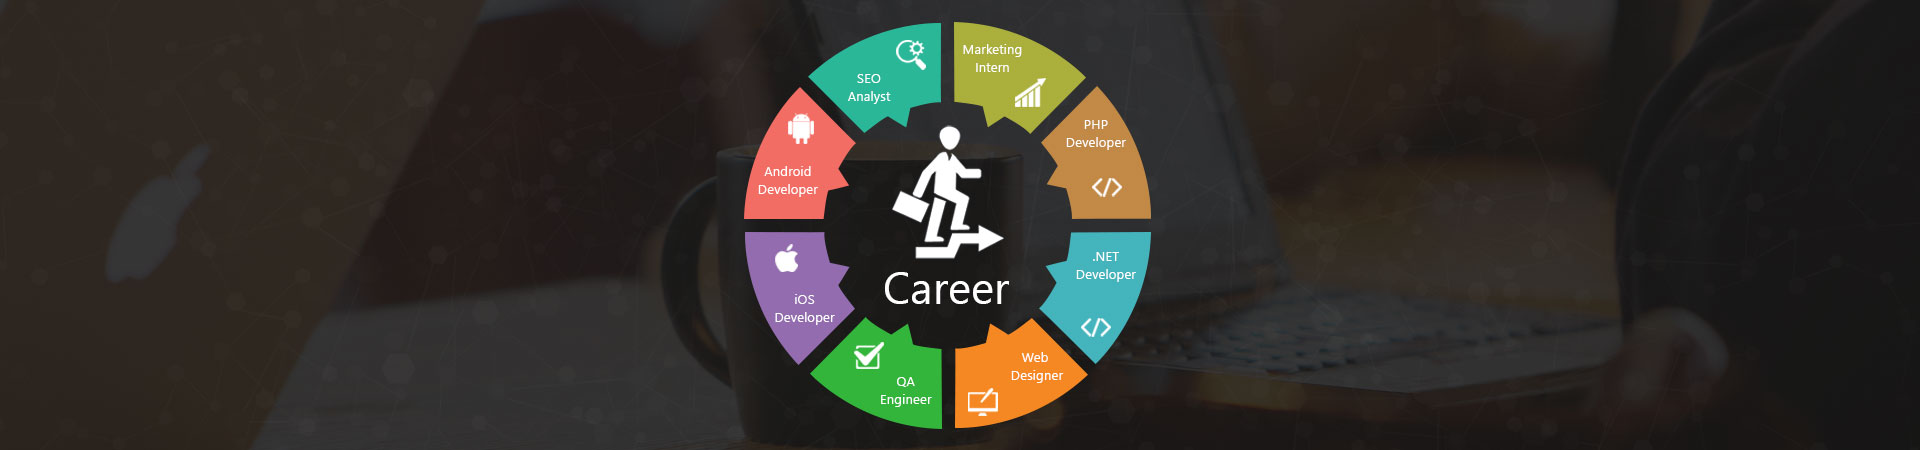 career_job-opeing